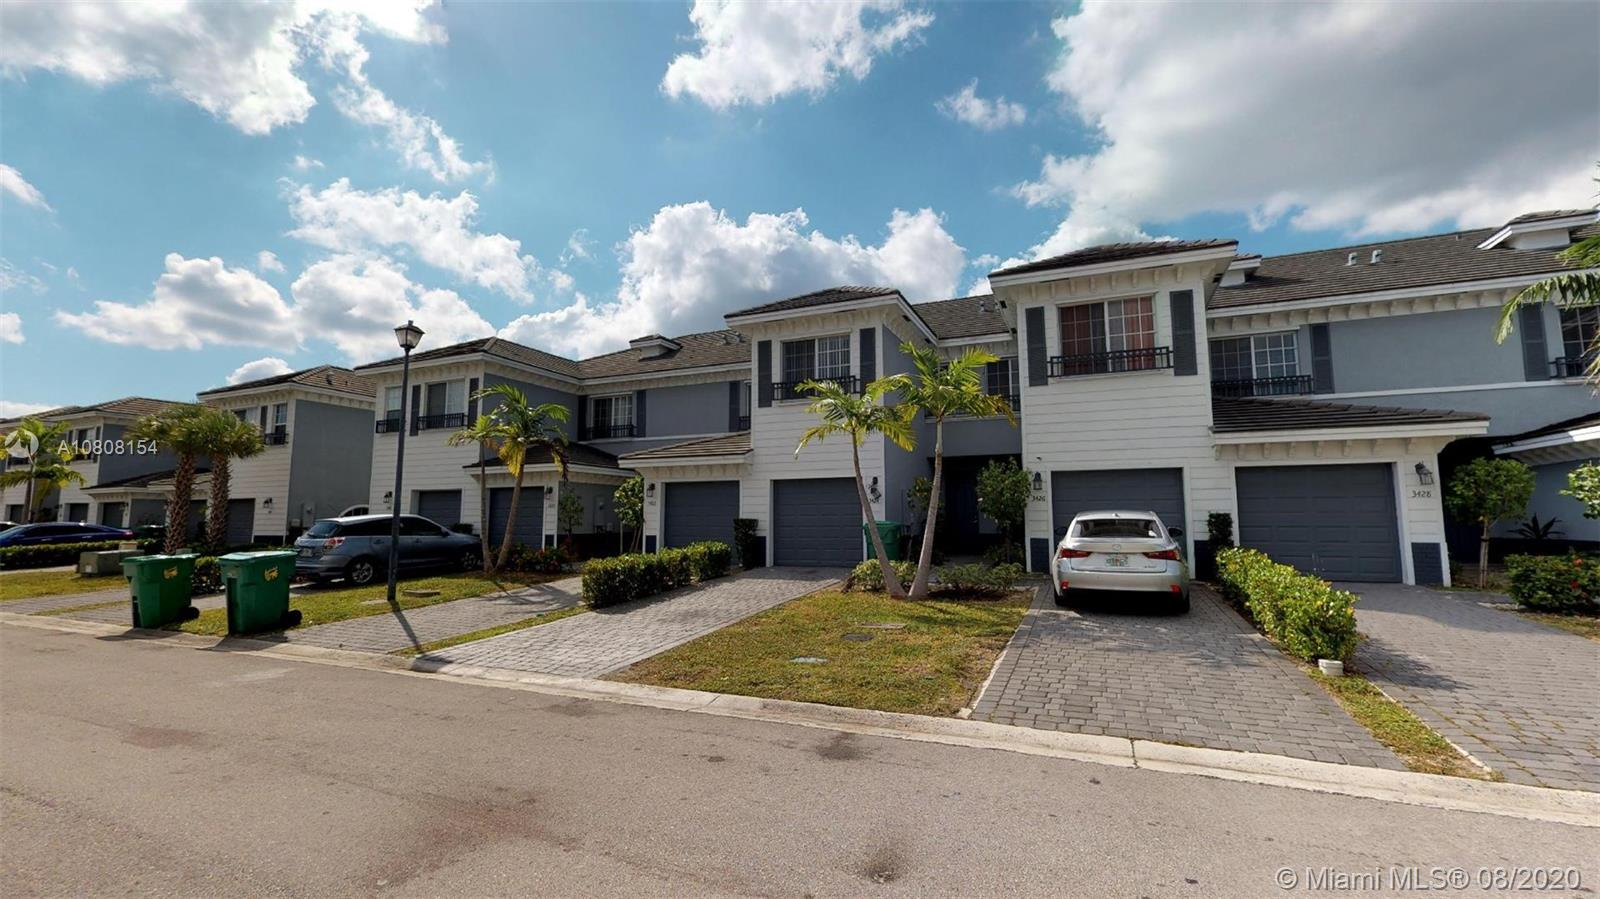 PROPERTY 3 BED /2.5 BATH TOWNHOUSE , 1.346 SQF MINUTES FROM SAWGRASS MALLl, FORT LAUDERDALE BEACH. AMENITIES INCLUDING A SWIMMING POOL , MEETING ROOMS, CHILDREN´S PLAYGROUND. GREAT OPPORTUNITY .